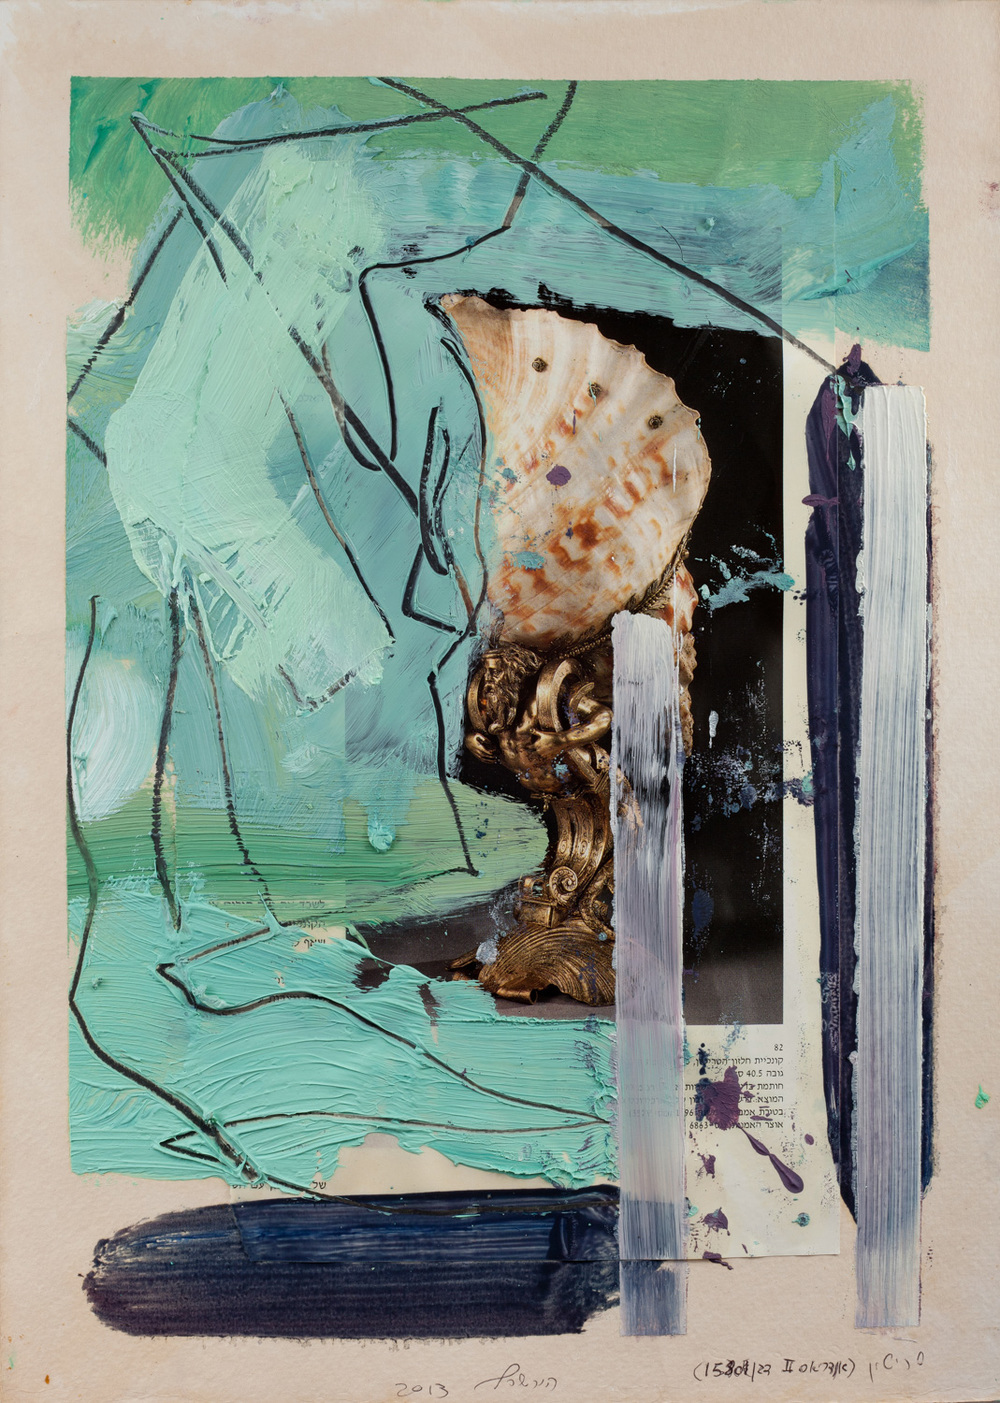 Untitled, Mixed media on paper, 20x30 cm, 2013